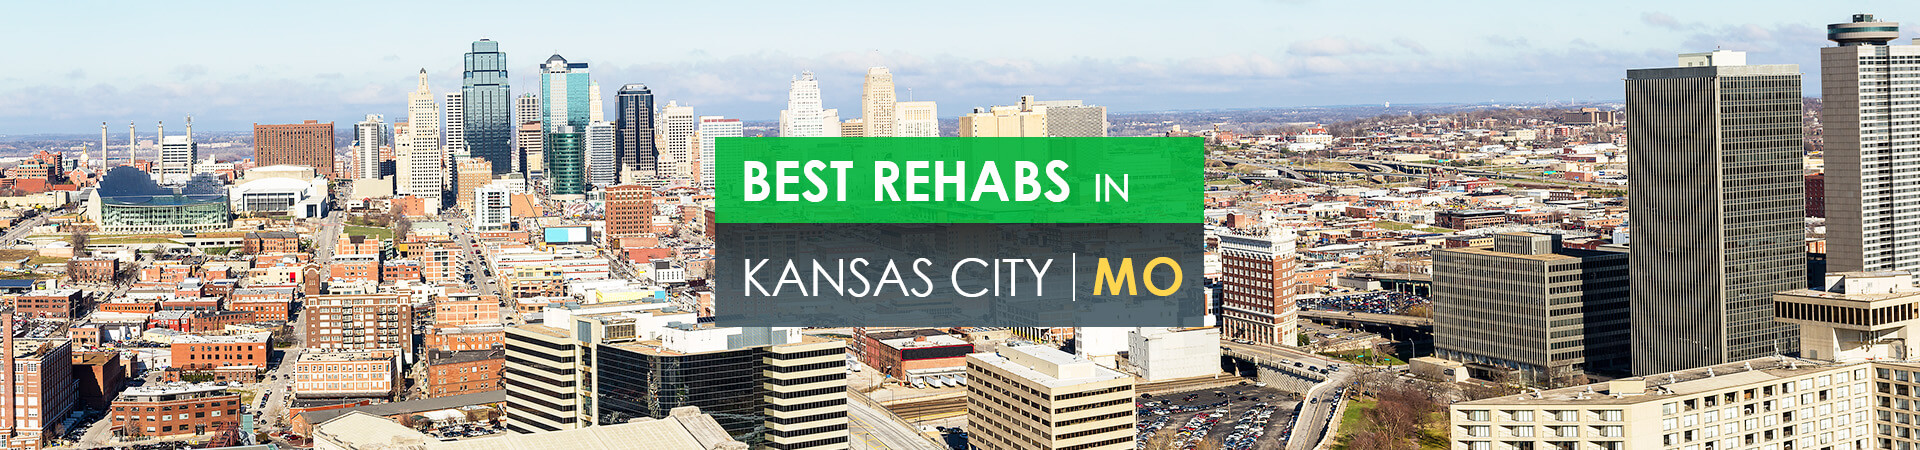 Best rehabs in Kansas City, MO